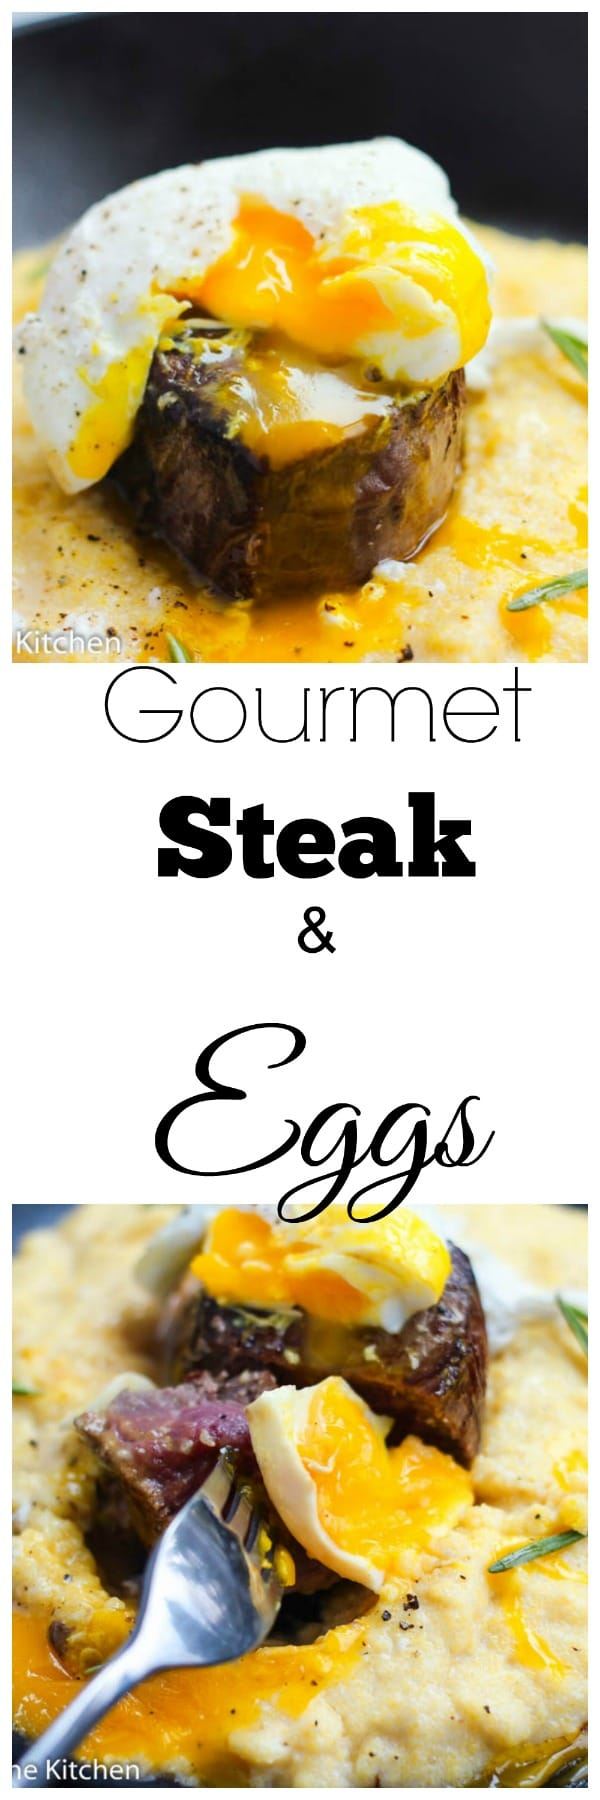 A perfect and elegant breakfast or brunch idea that amps up the classic steak and eggs. Runny poached eggs served with filet mignon is how brunch is done in our house. Sometimes:)